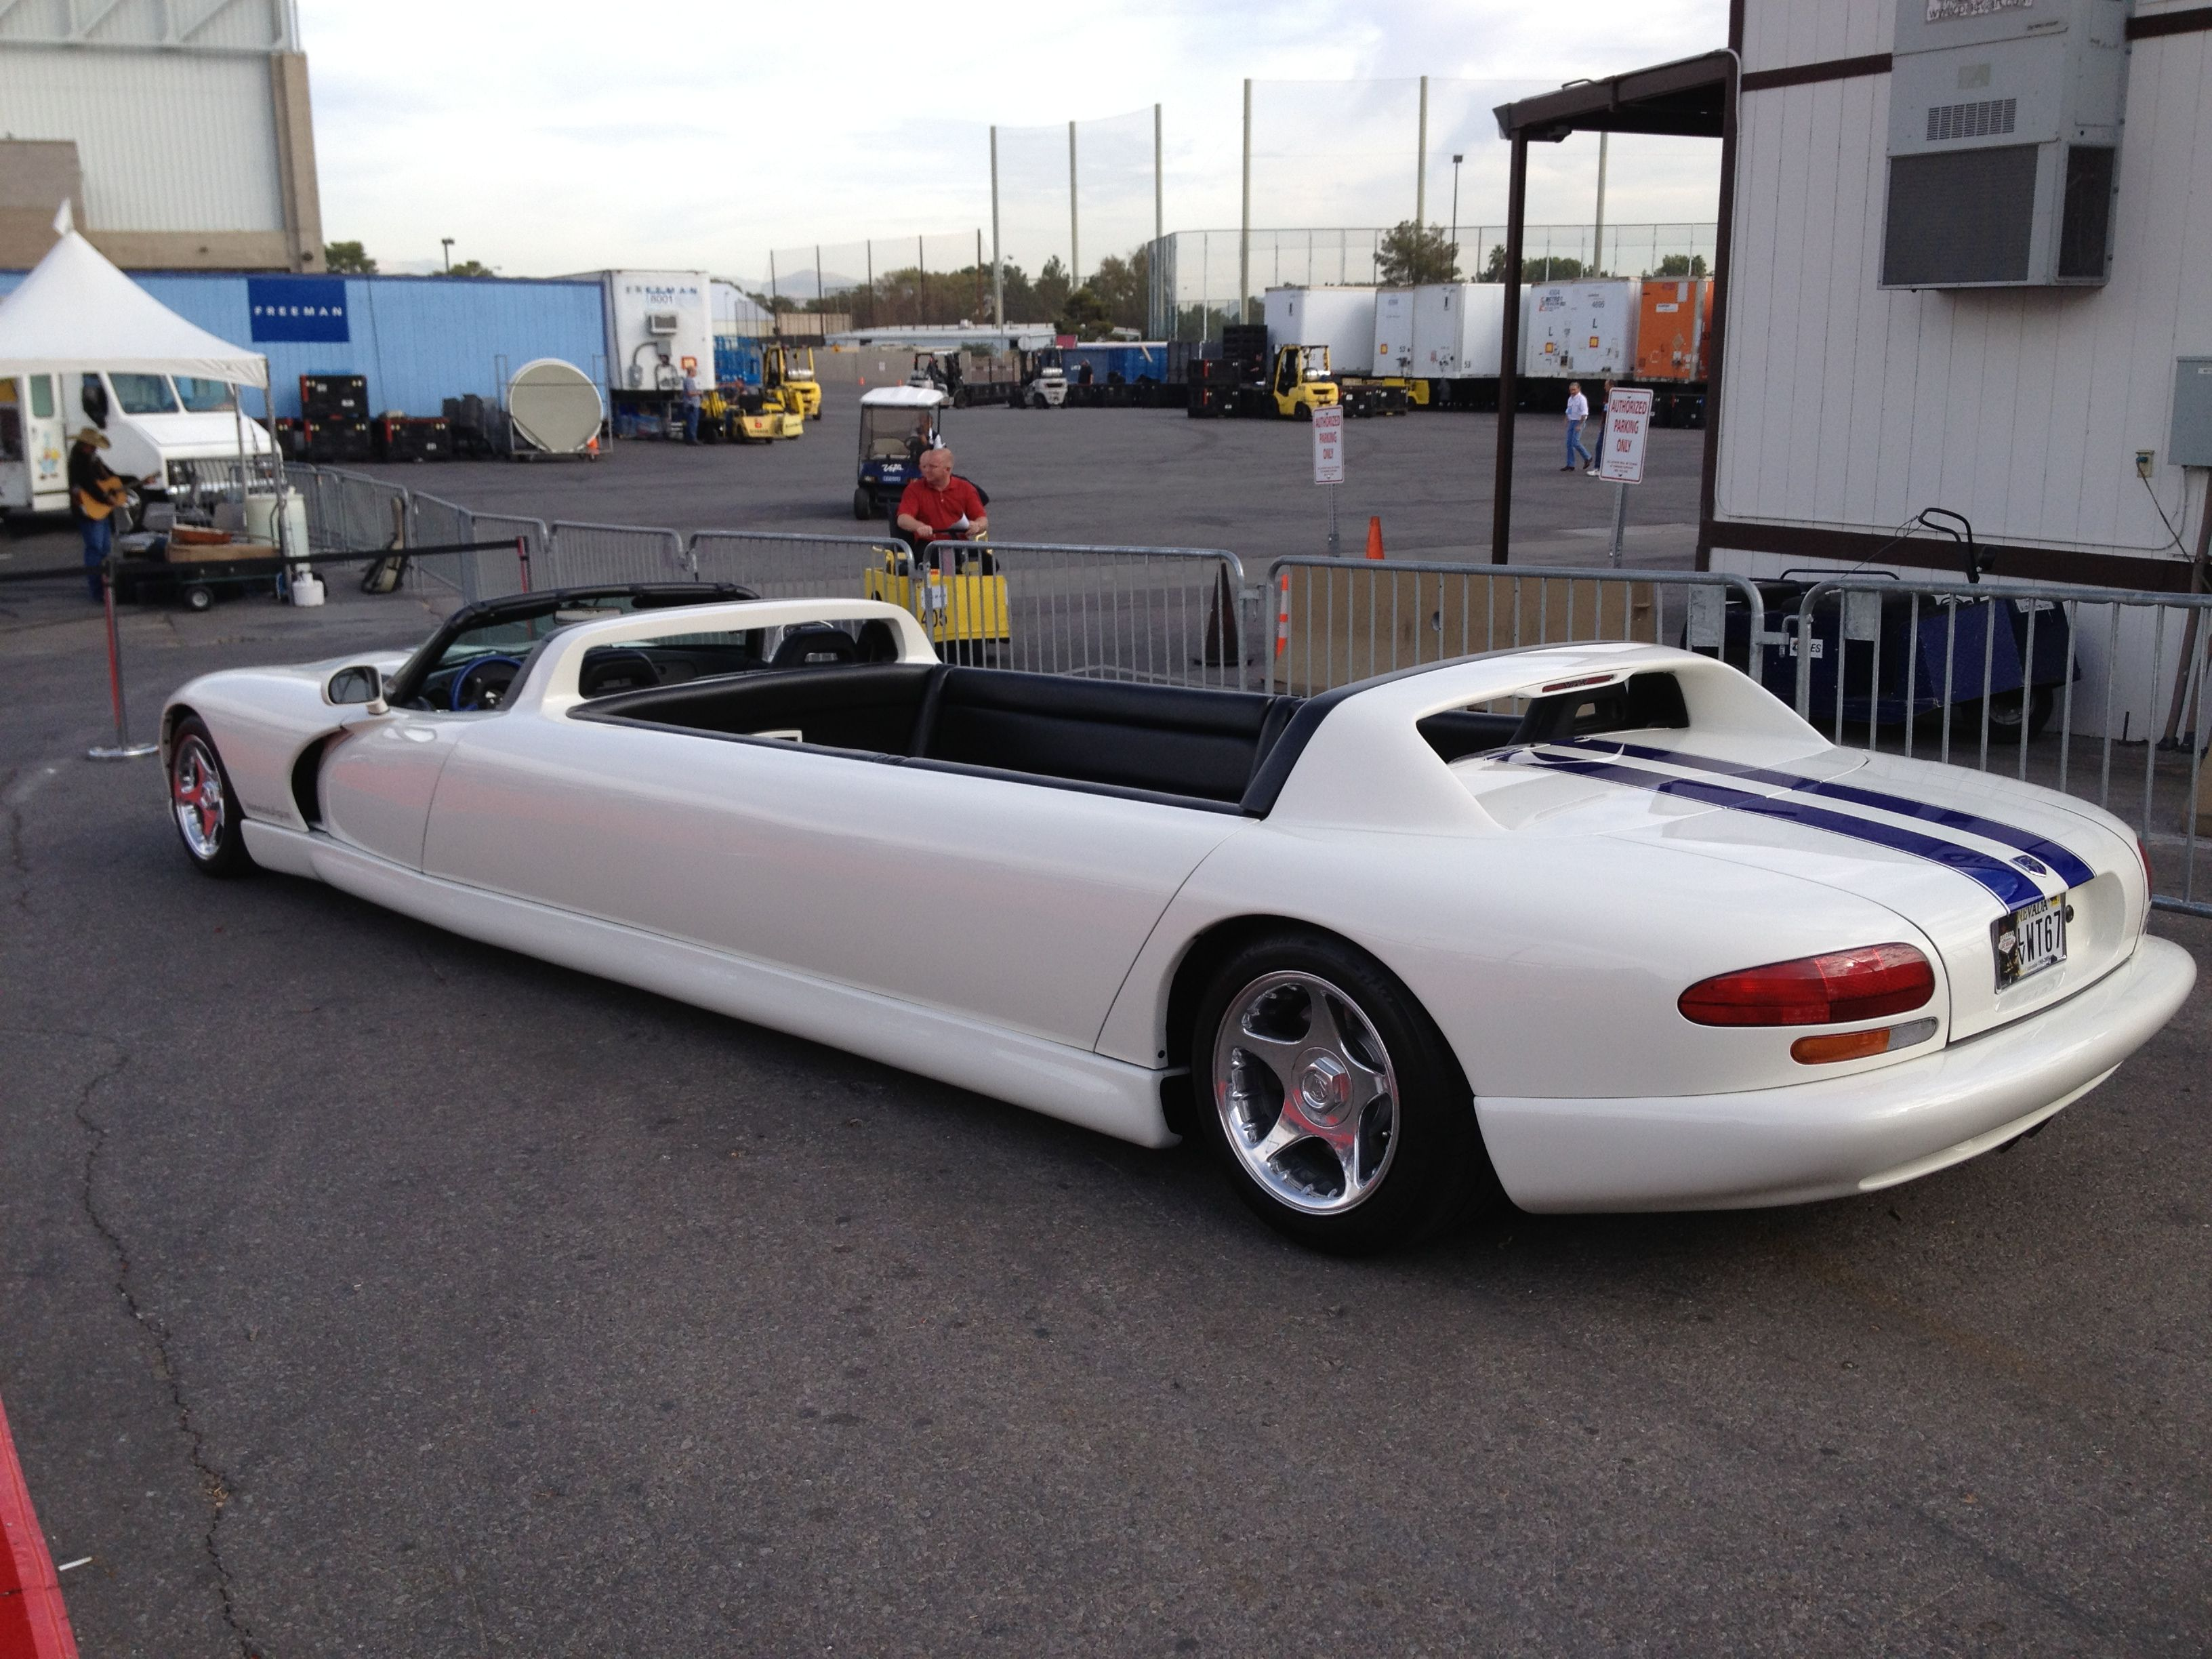 Dodge Viper Limo I stumbled upon this unique nice car Take a look